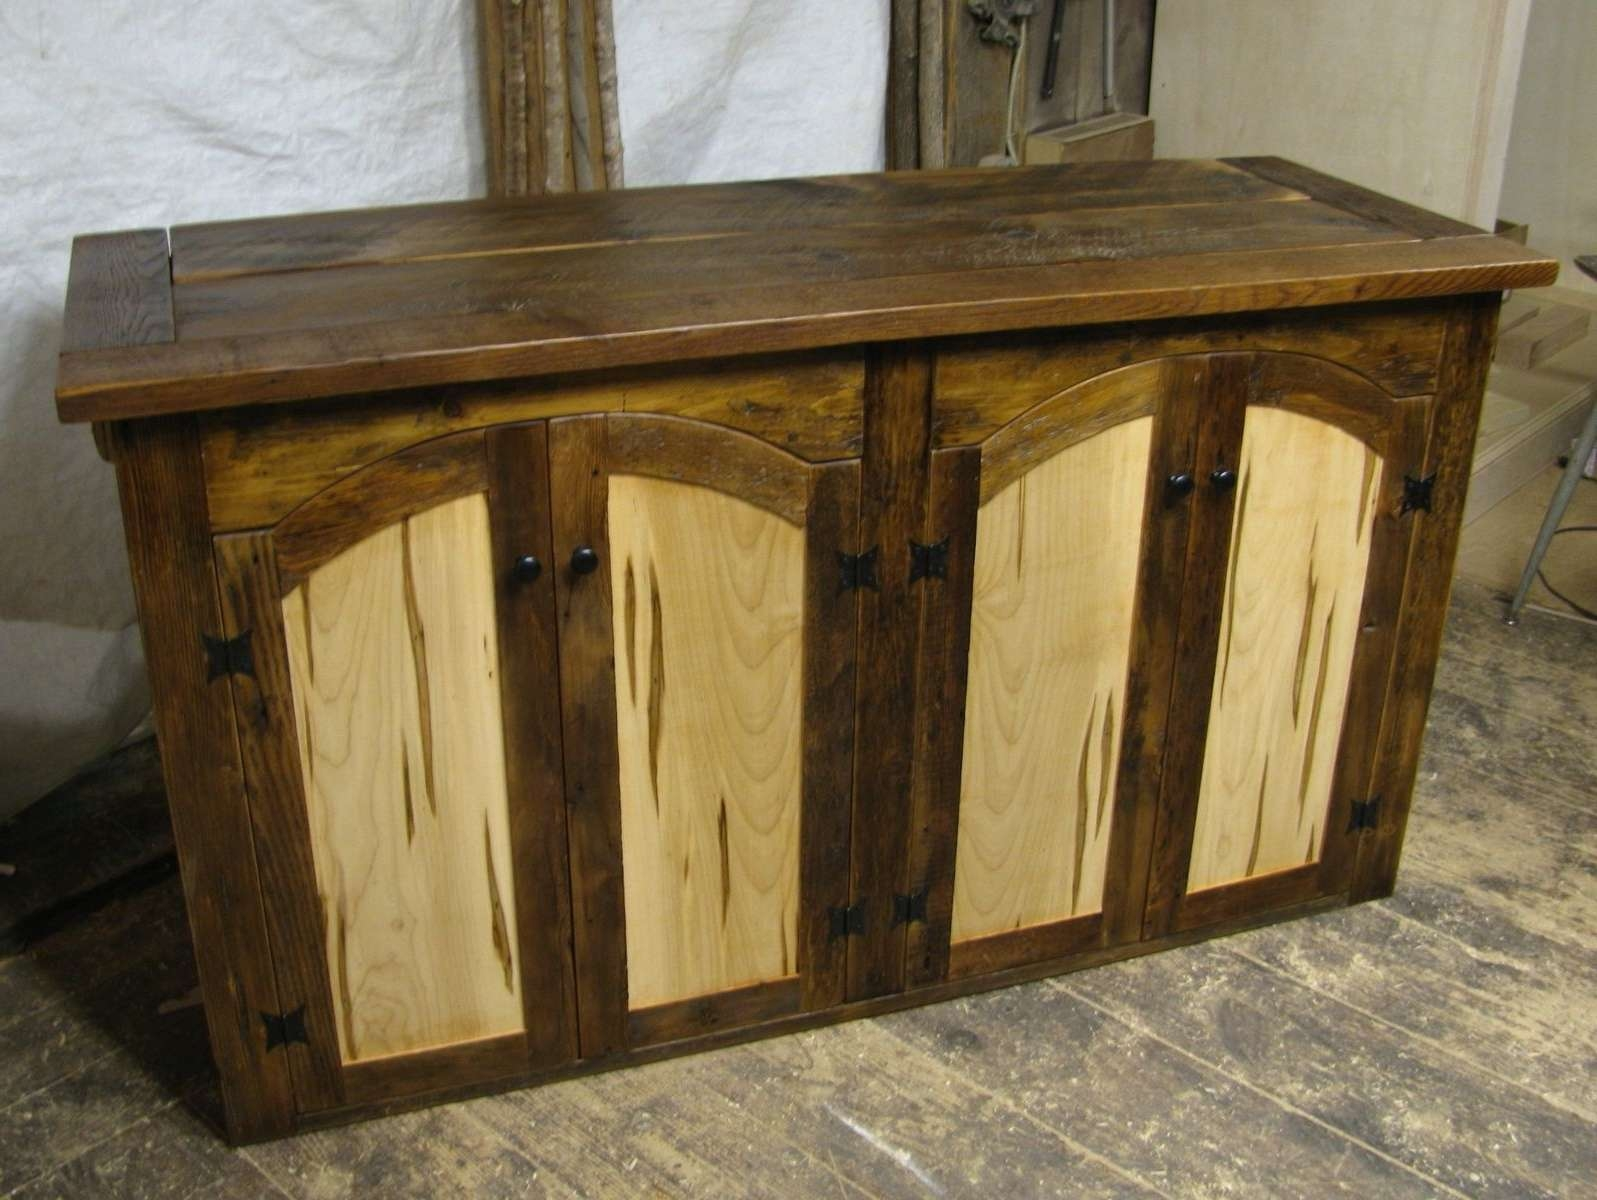 Hand Made Rustic Tv Lift Cabinet With Spaulted Maple Doors Intended For Maple Tv Cabinets (View 7 of 20)